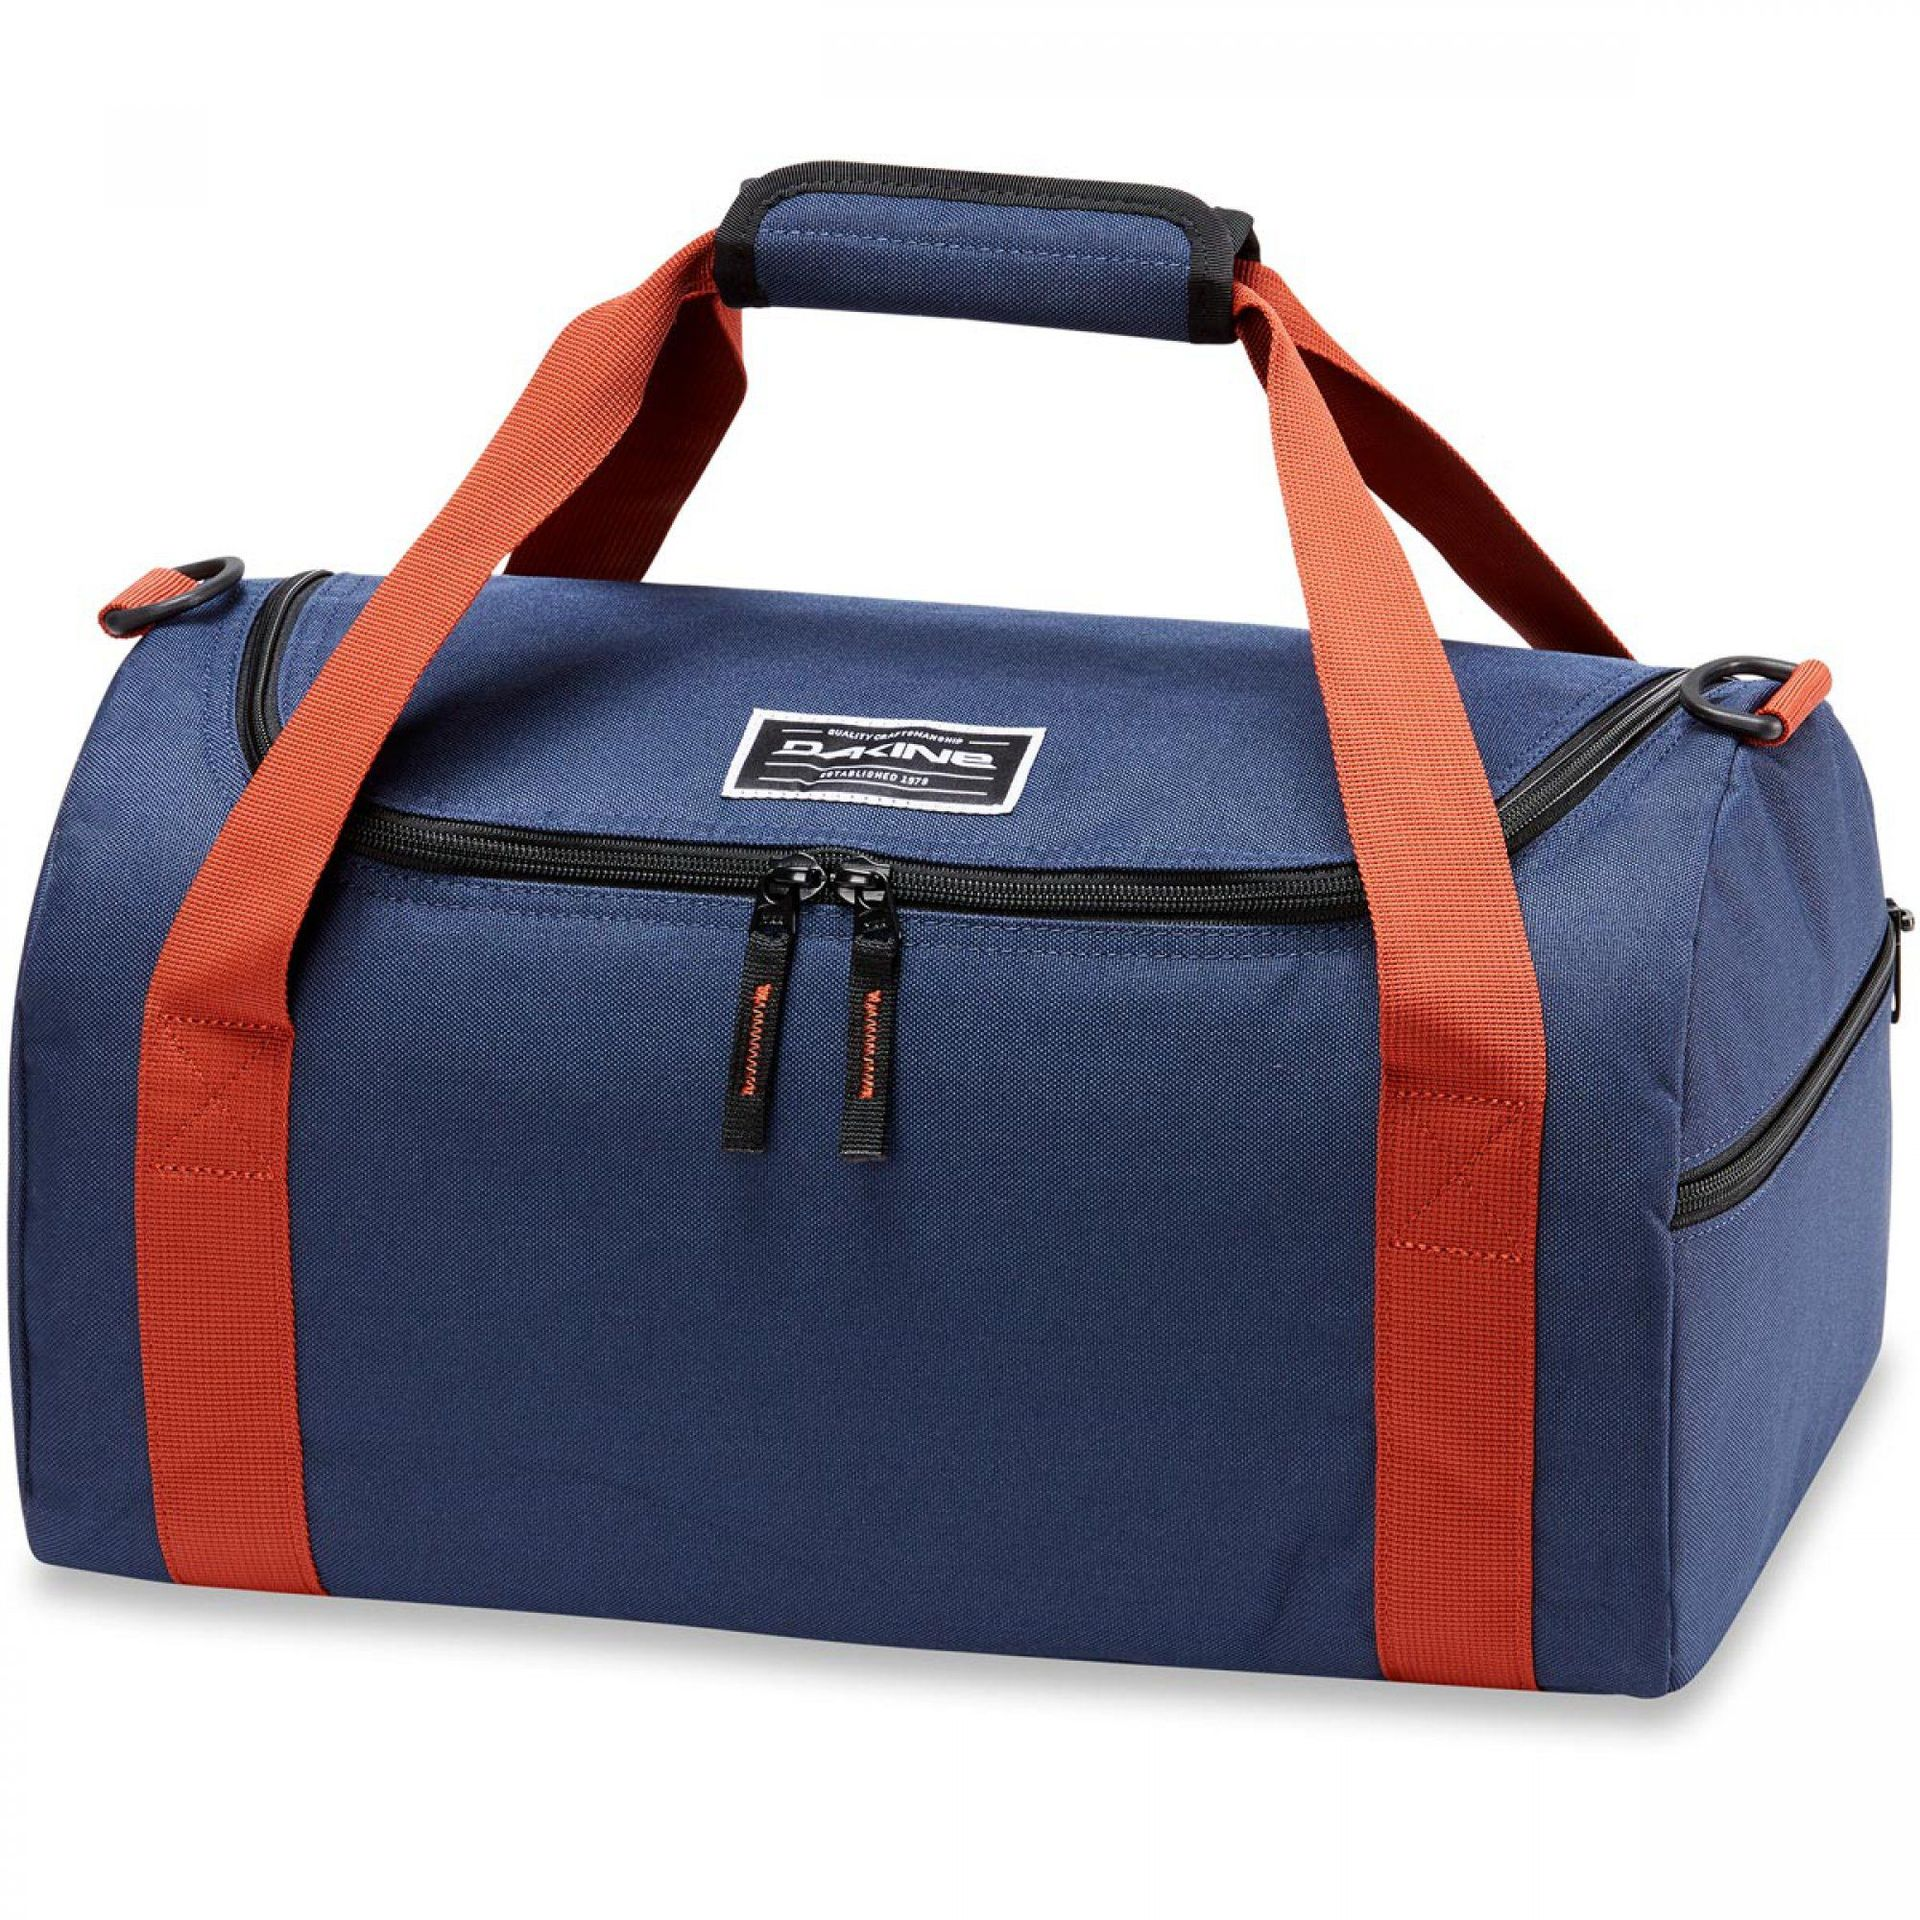 TORBA PODRÓŻNA DAKINE EQ BAG 23L DARK NAVY